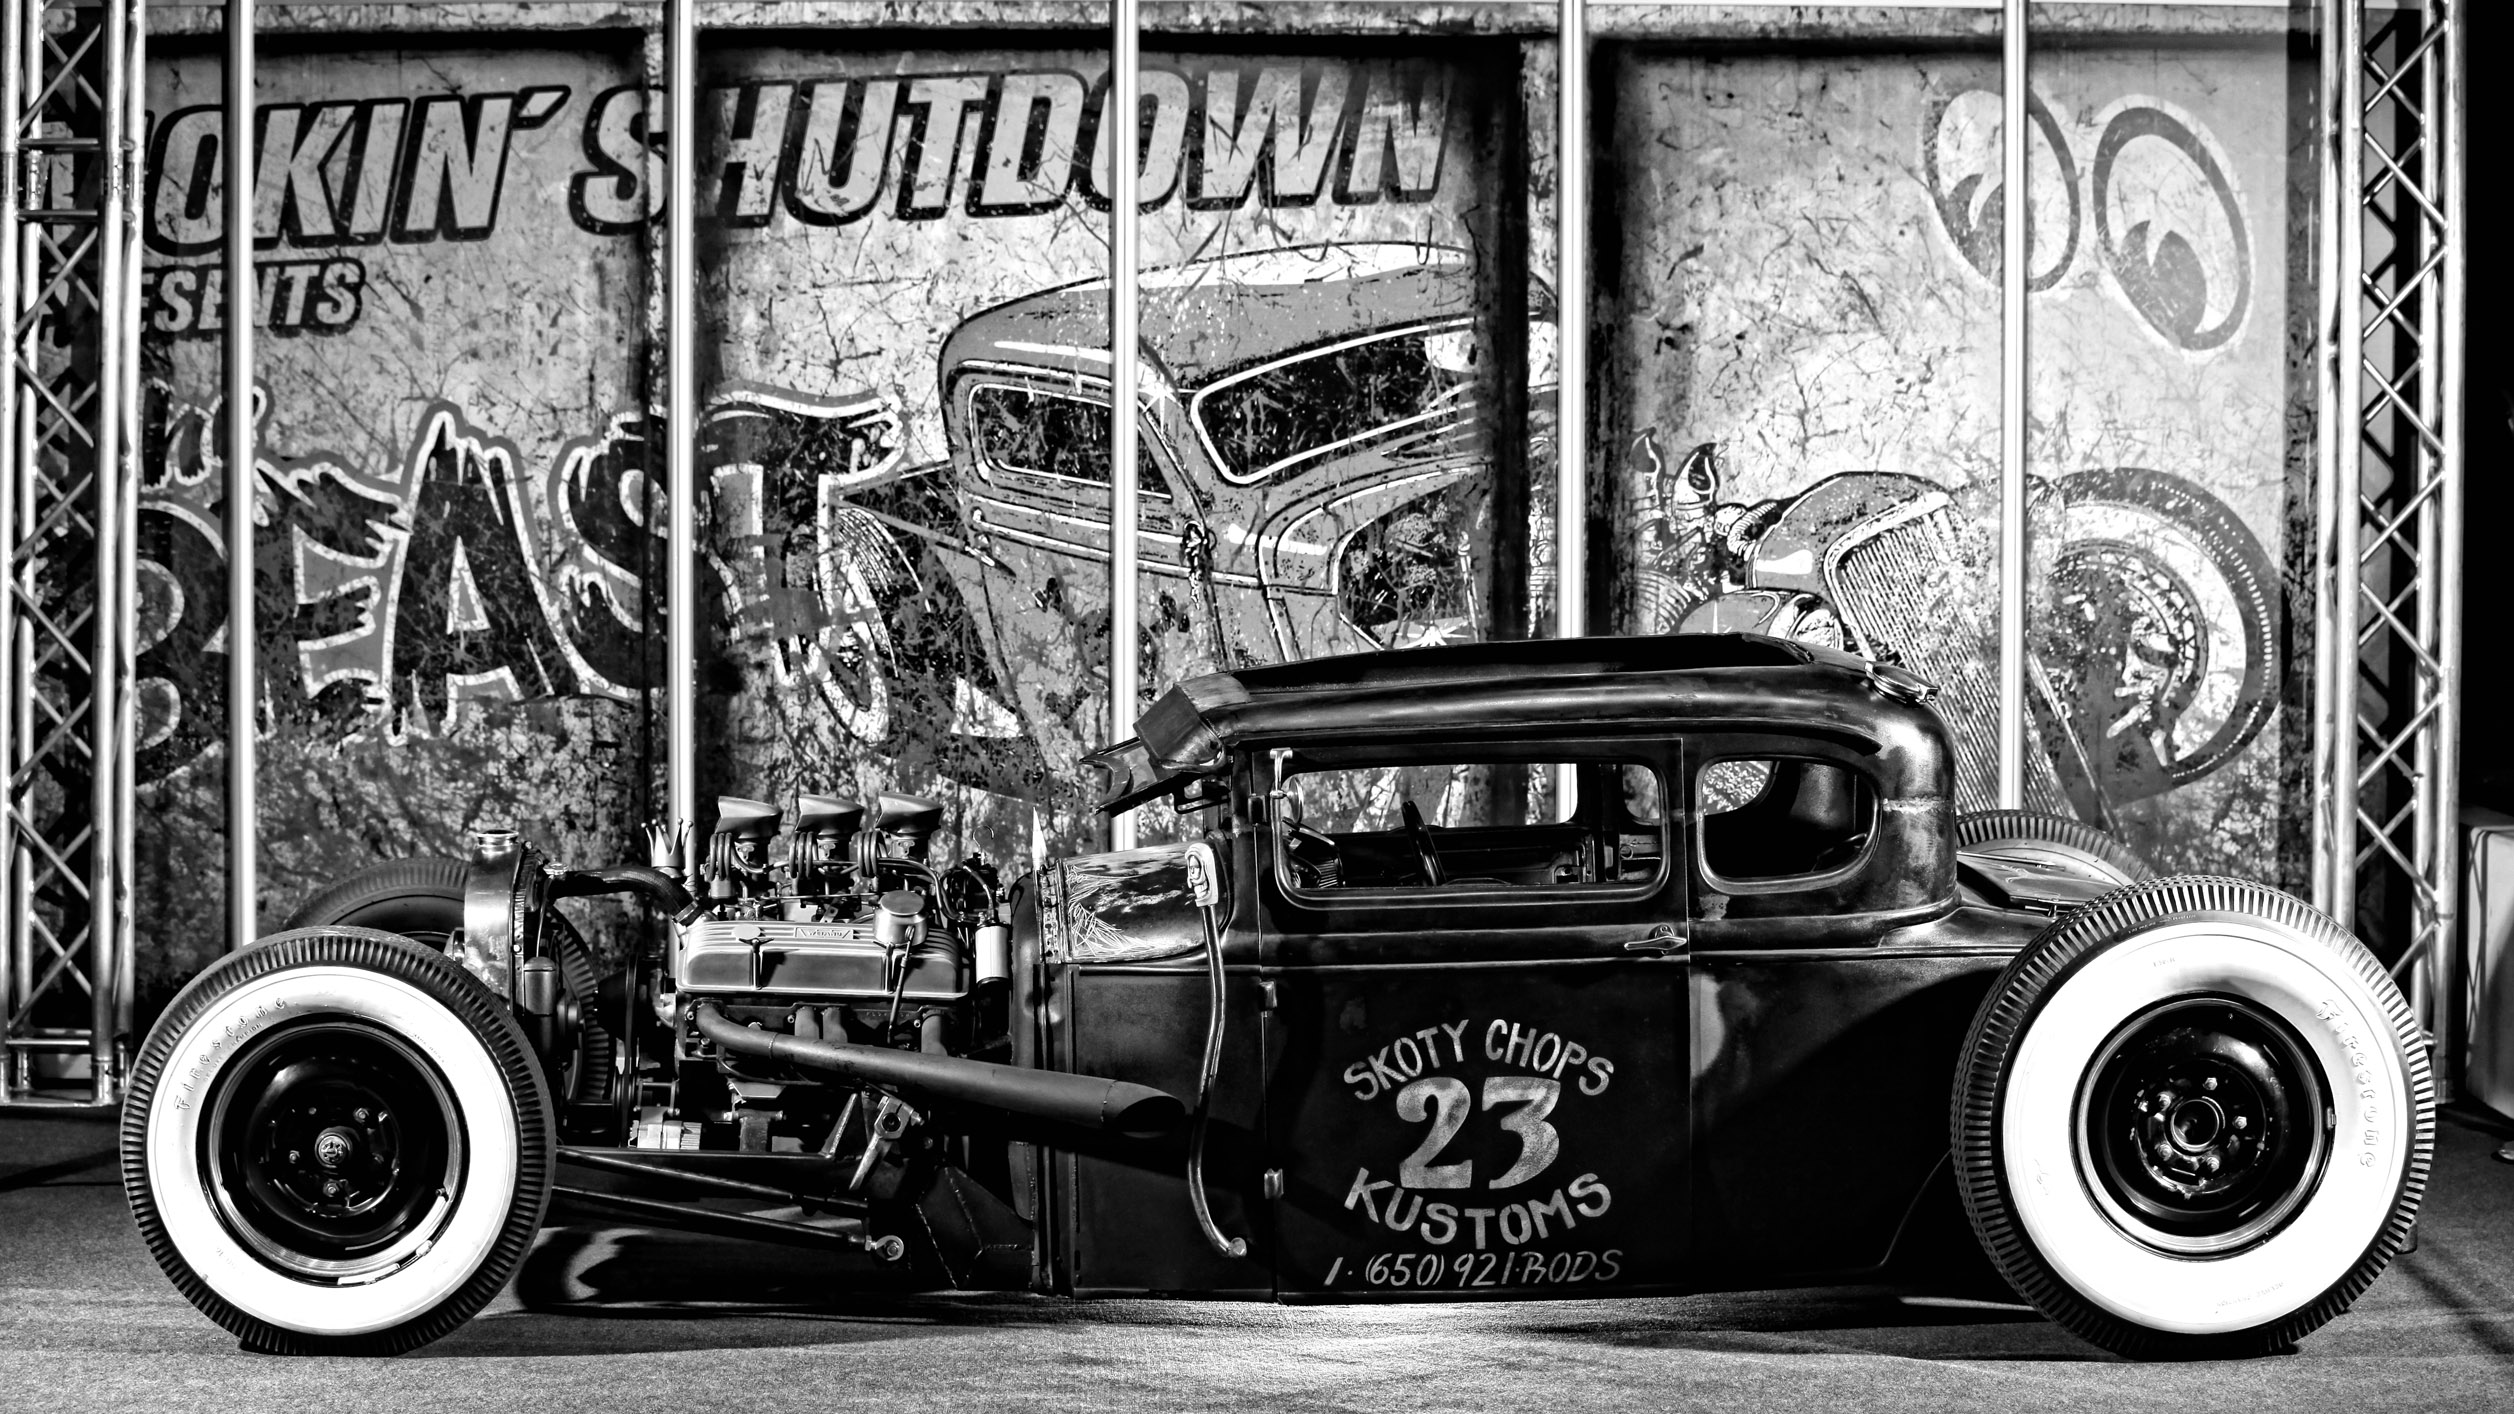 Awesome Hot Rod Pics Hdq For Laptop - Hot Rod - HD Wallpaper